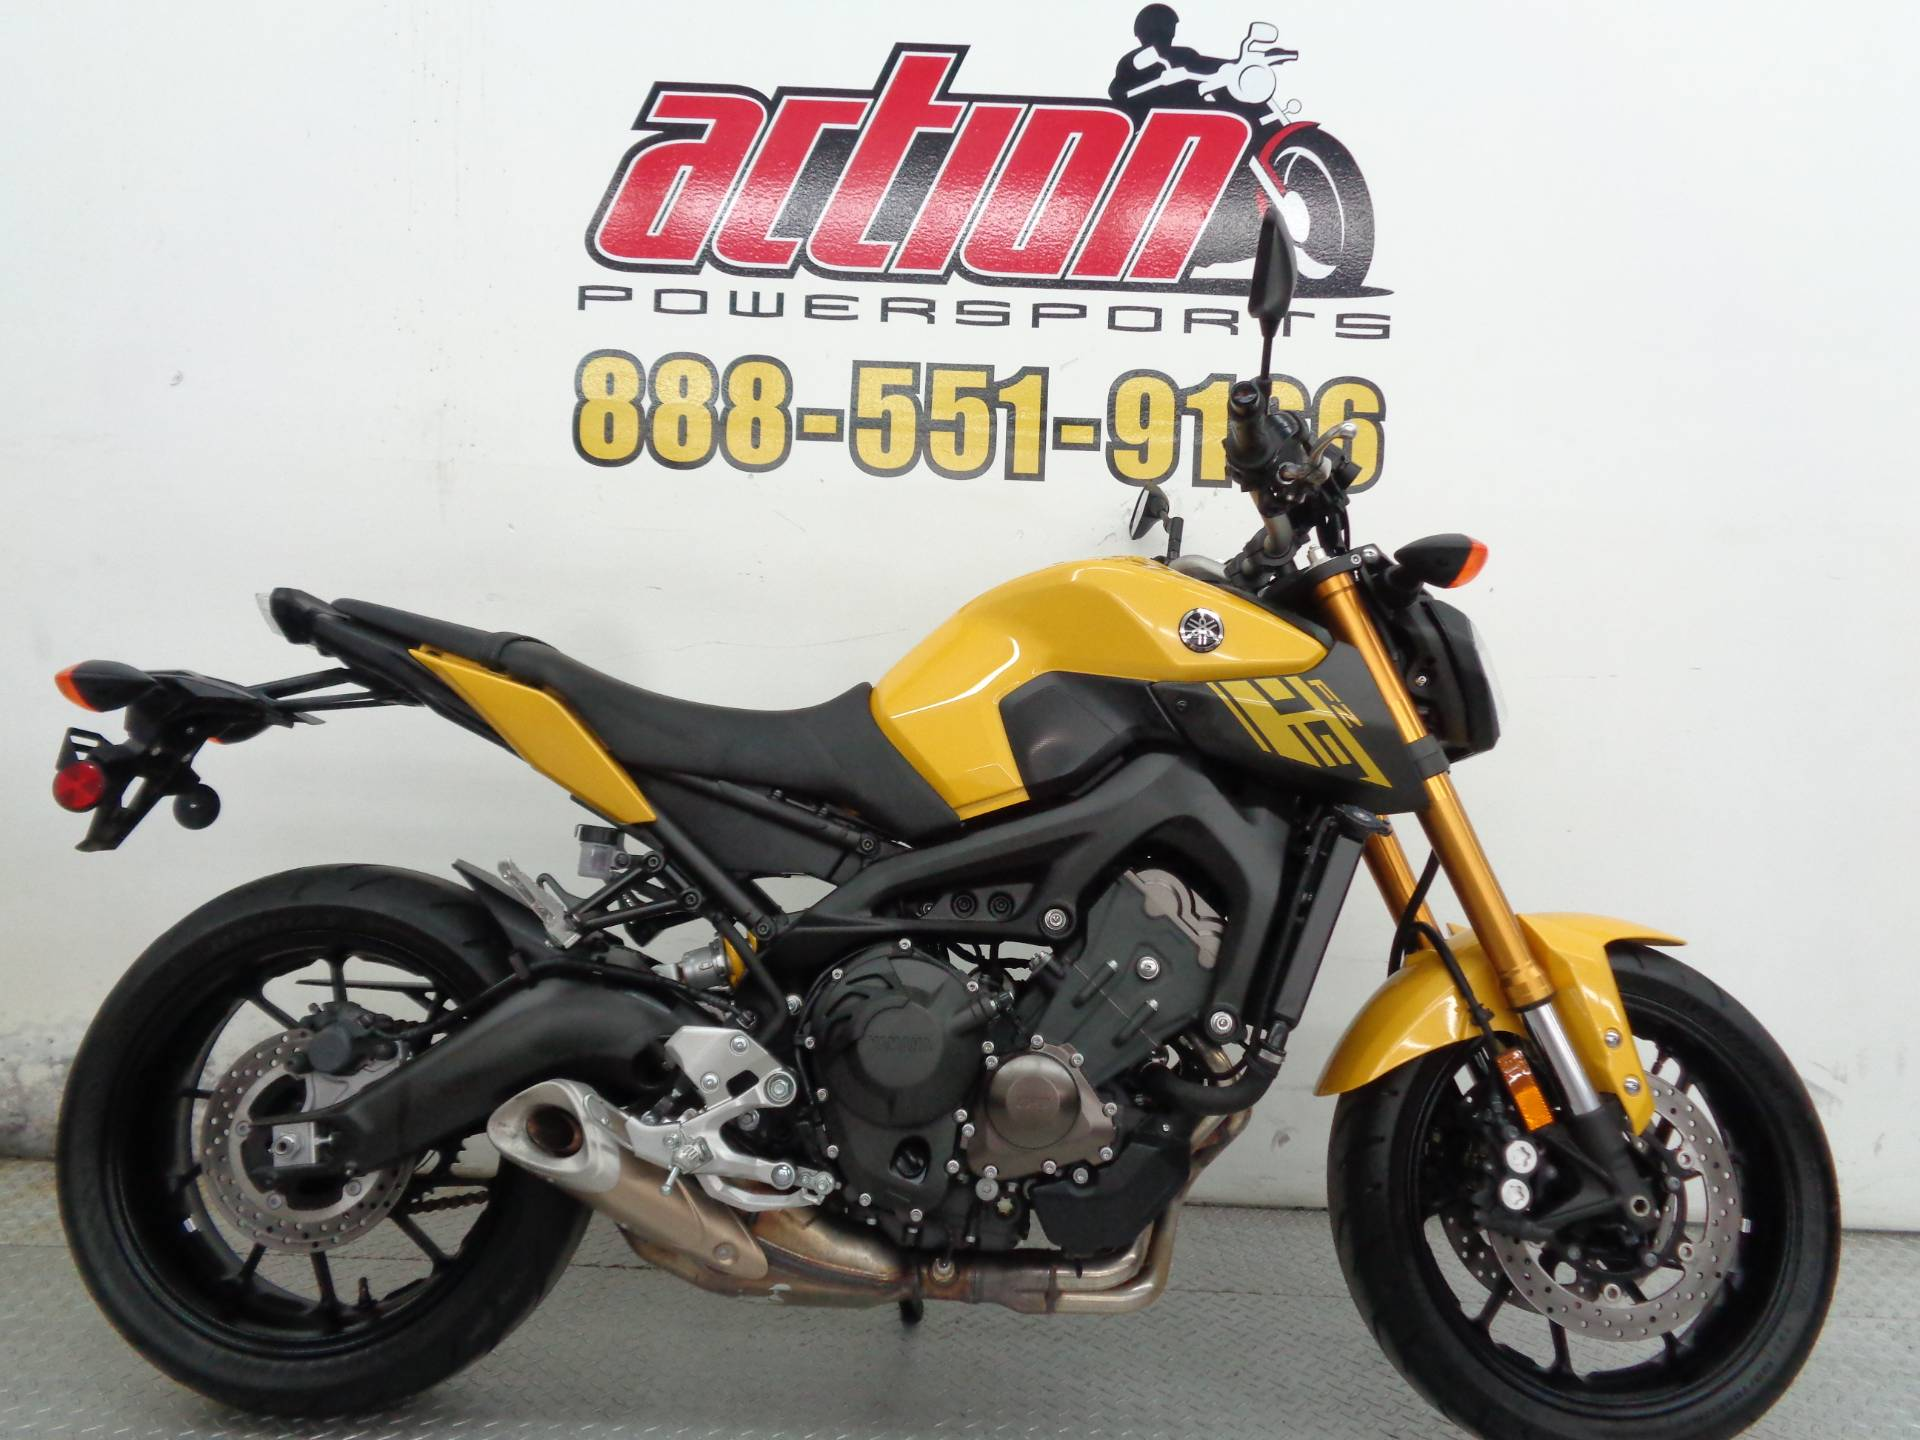 2015 Yamaha FZ-09 for sale 56300